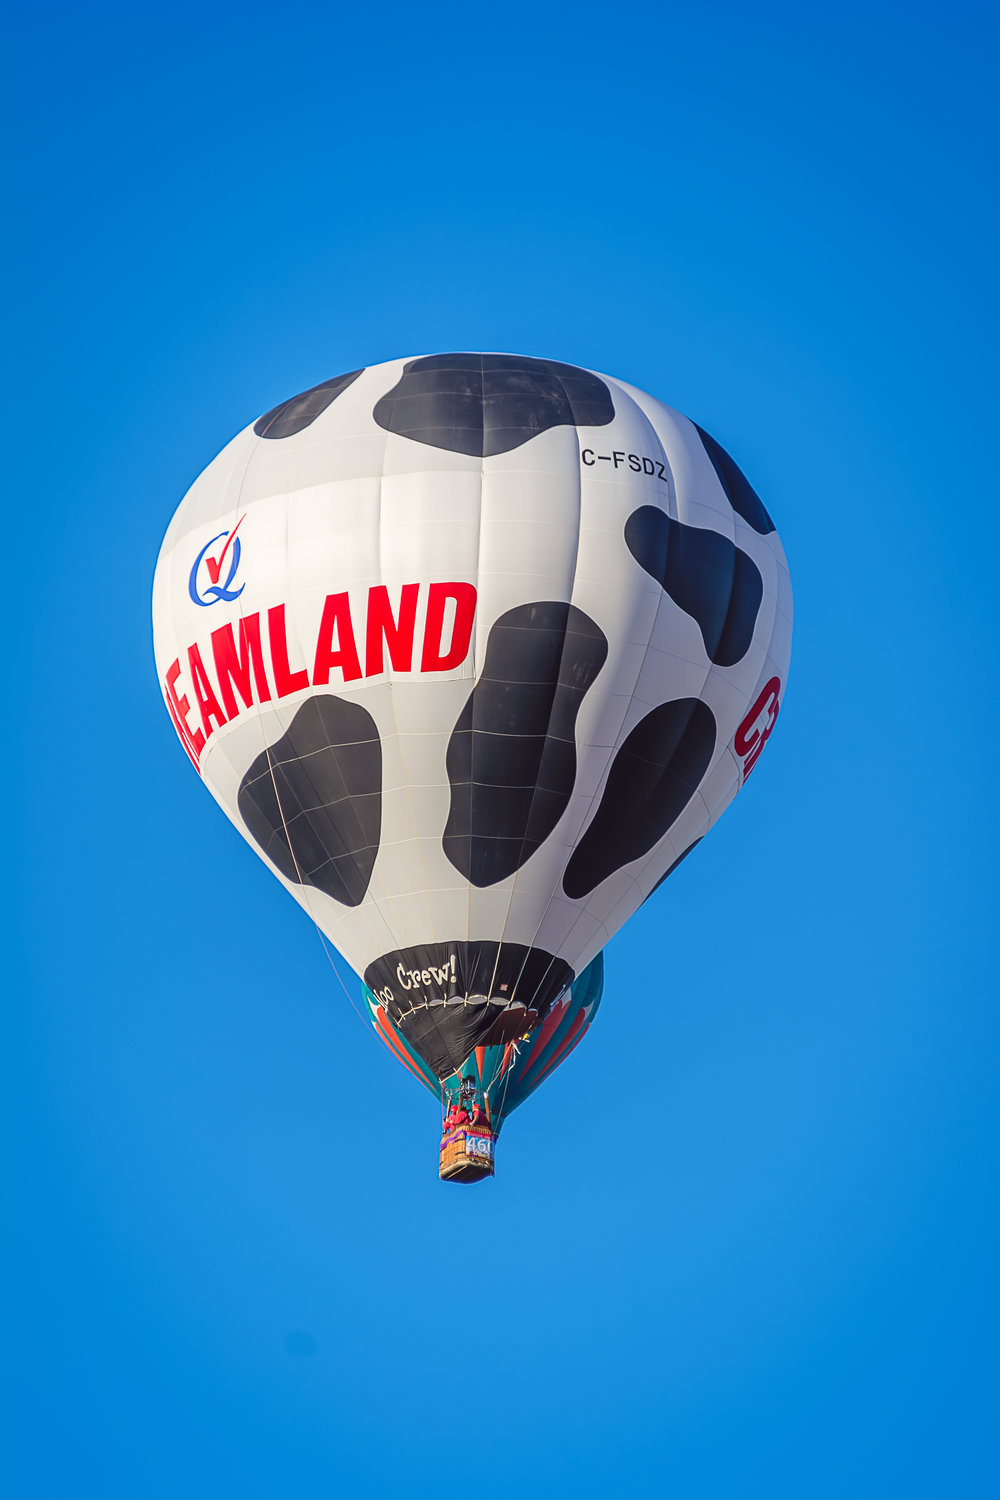 Creamland Dairy, Creamland Dairy Hot Air Balloon, Albuquerque Photographers